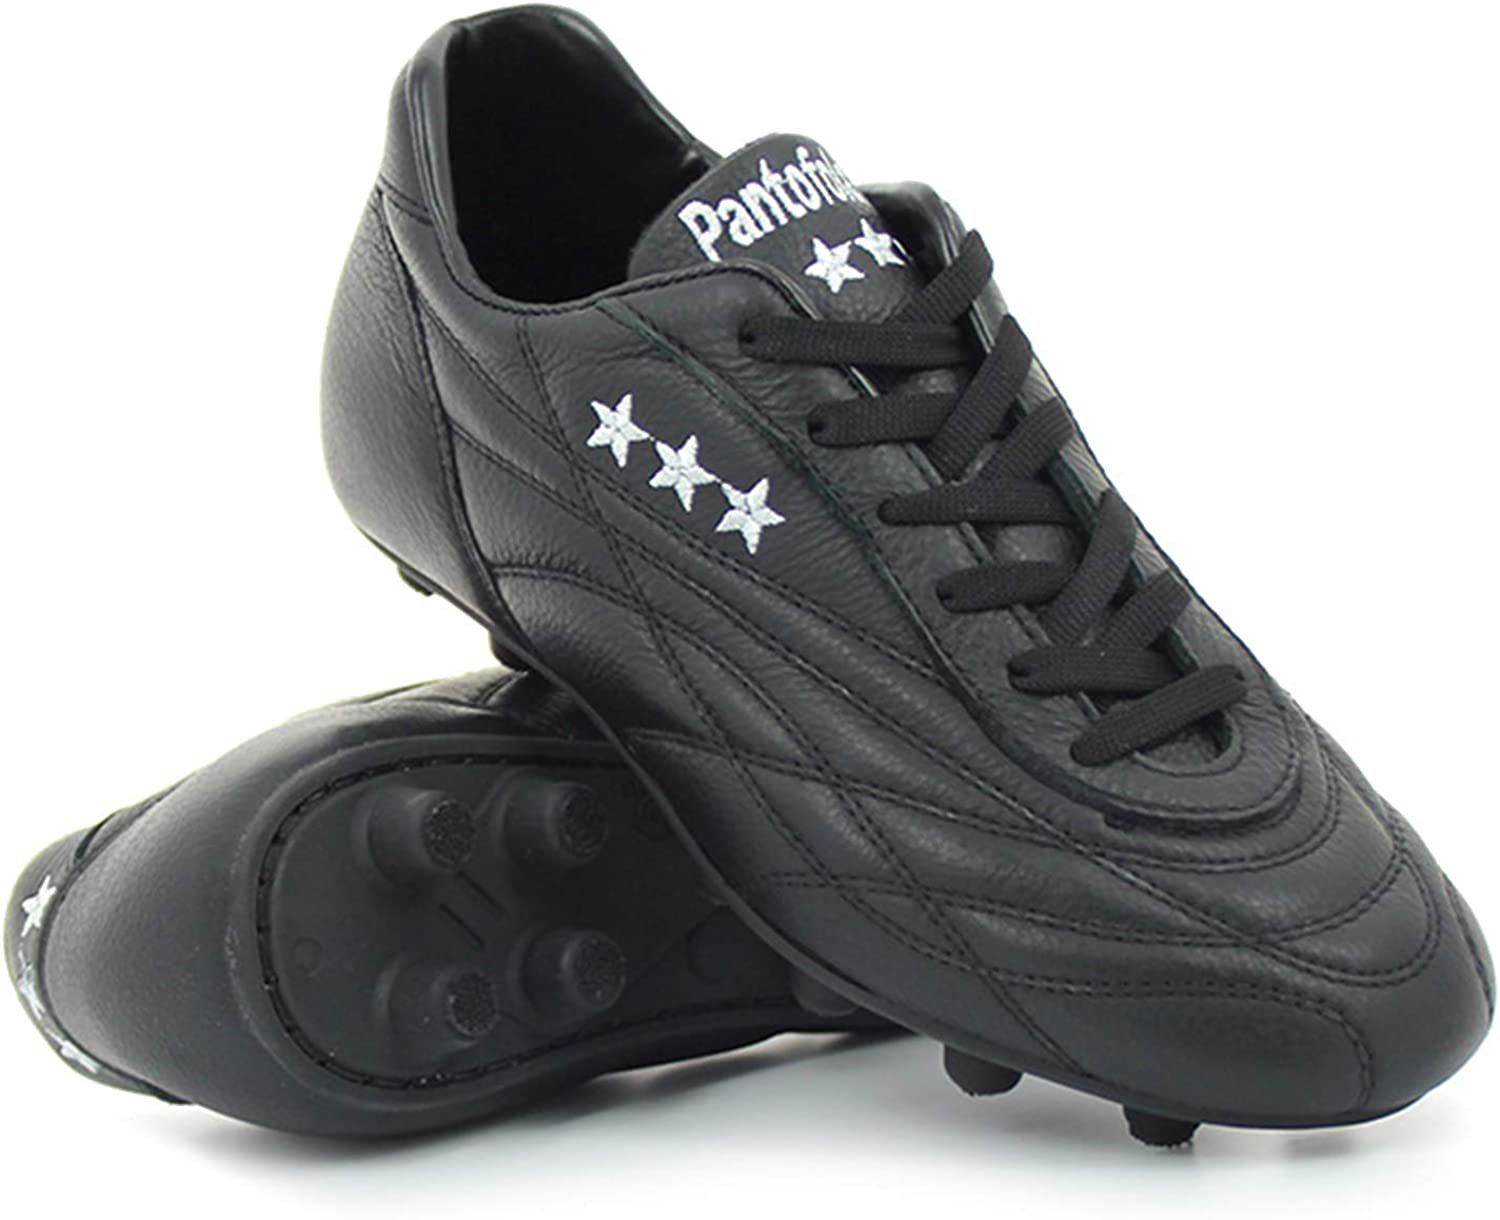 Pantofola d'gold Men's Football Boots